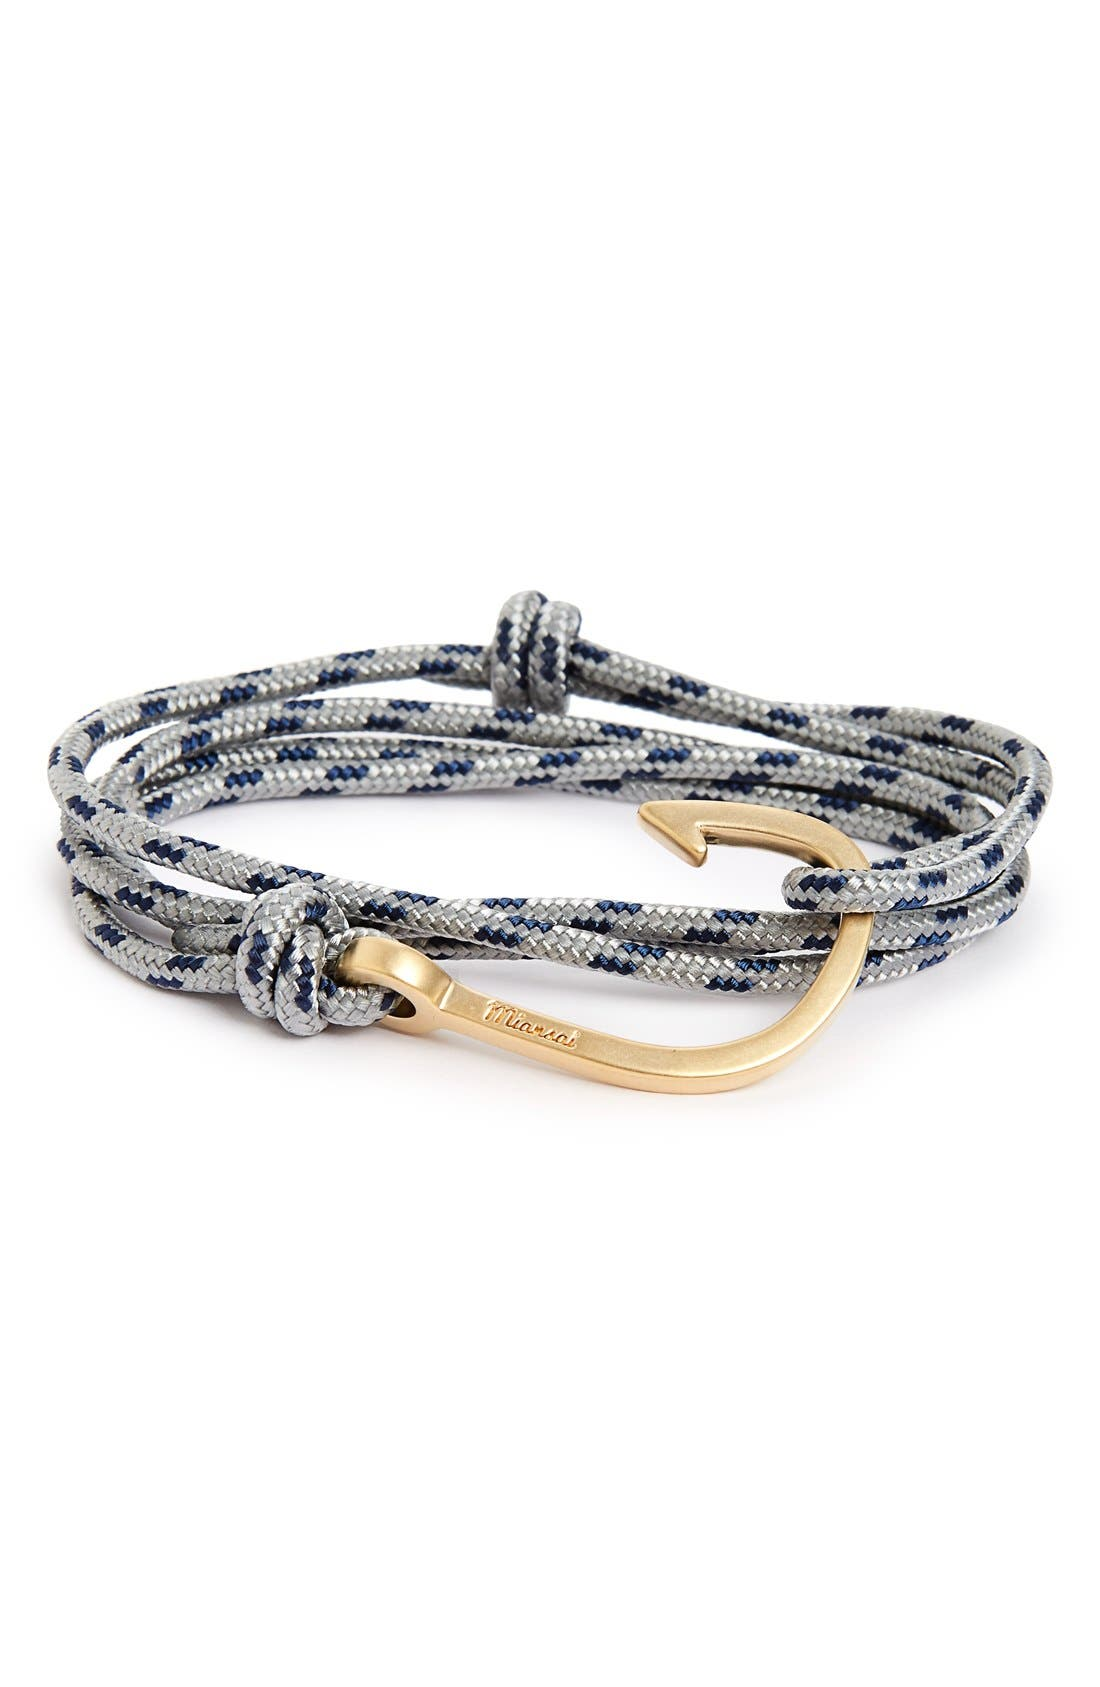 Hook Rope Wrap Bracelet,                         Main,                         color, Steel